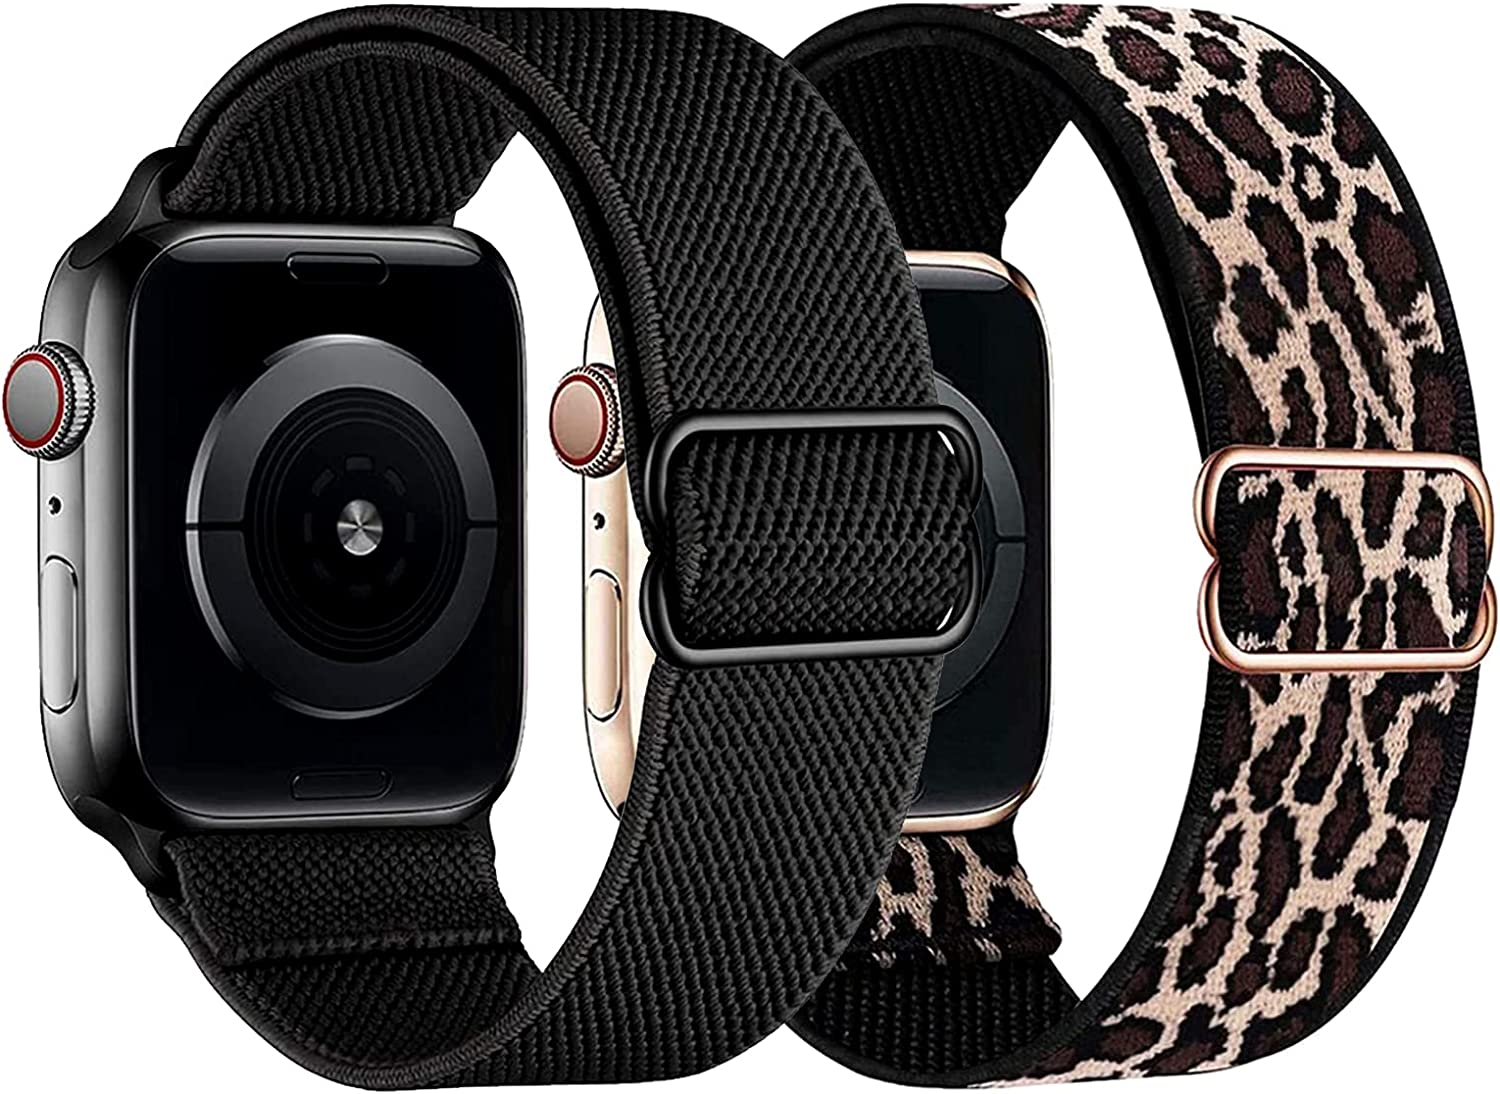 2 Pack Elastic Band Compatible with Apple Watch Bands 41mm 40mm 45mm 44mm 38mm 42mm, Adjustable Stretch Solo Loop Sport Nylon Women Men Bands Compatible for Apple Watch iwatch SE Series 7/6/5/4/3/2/1